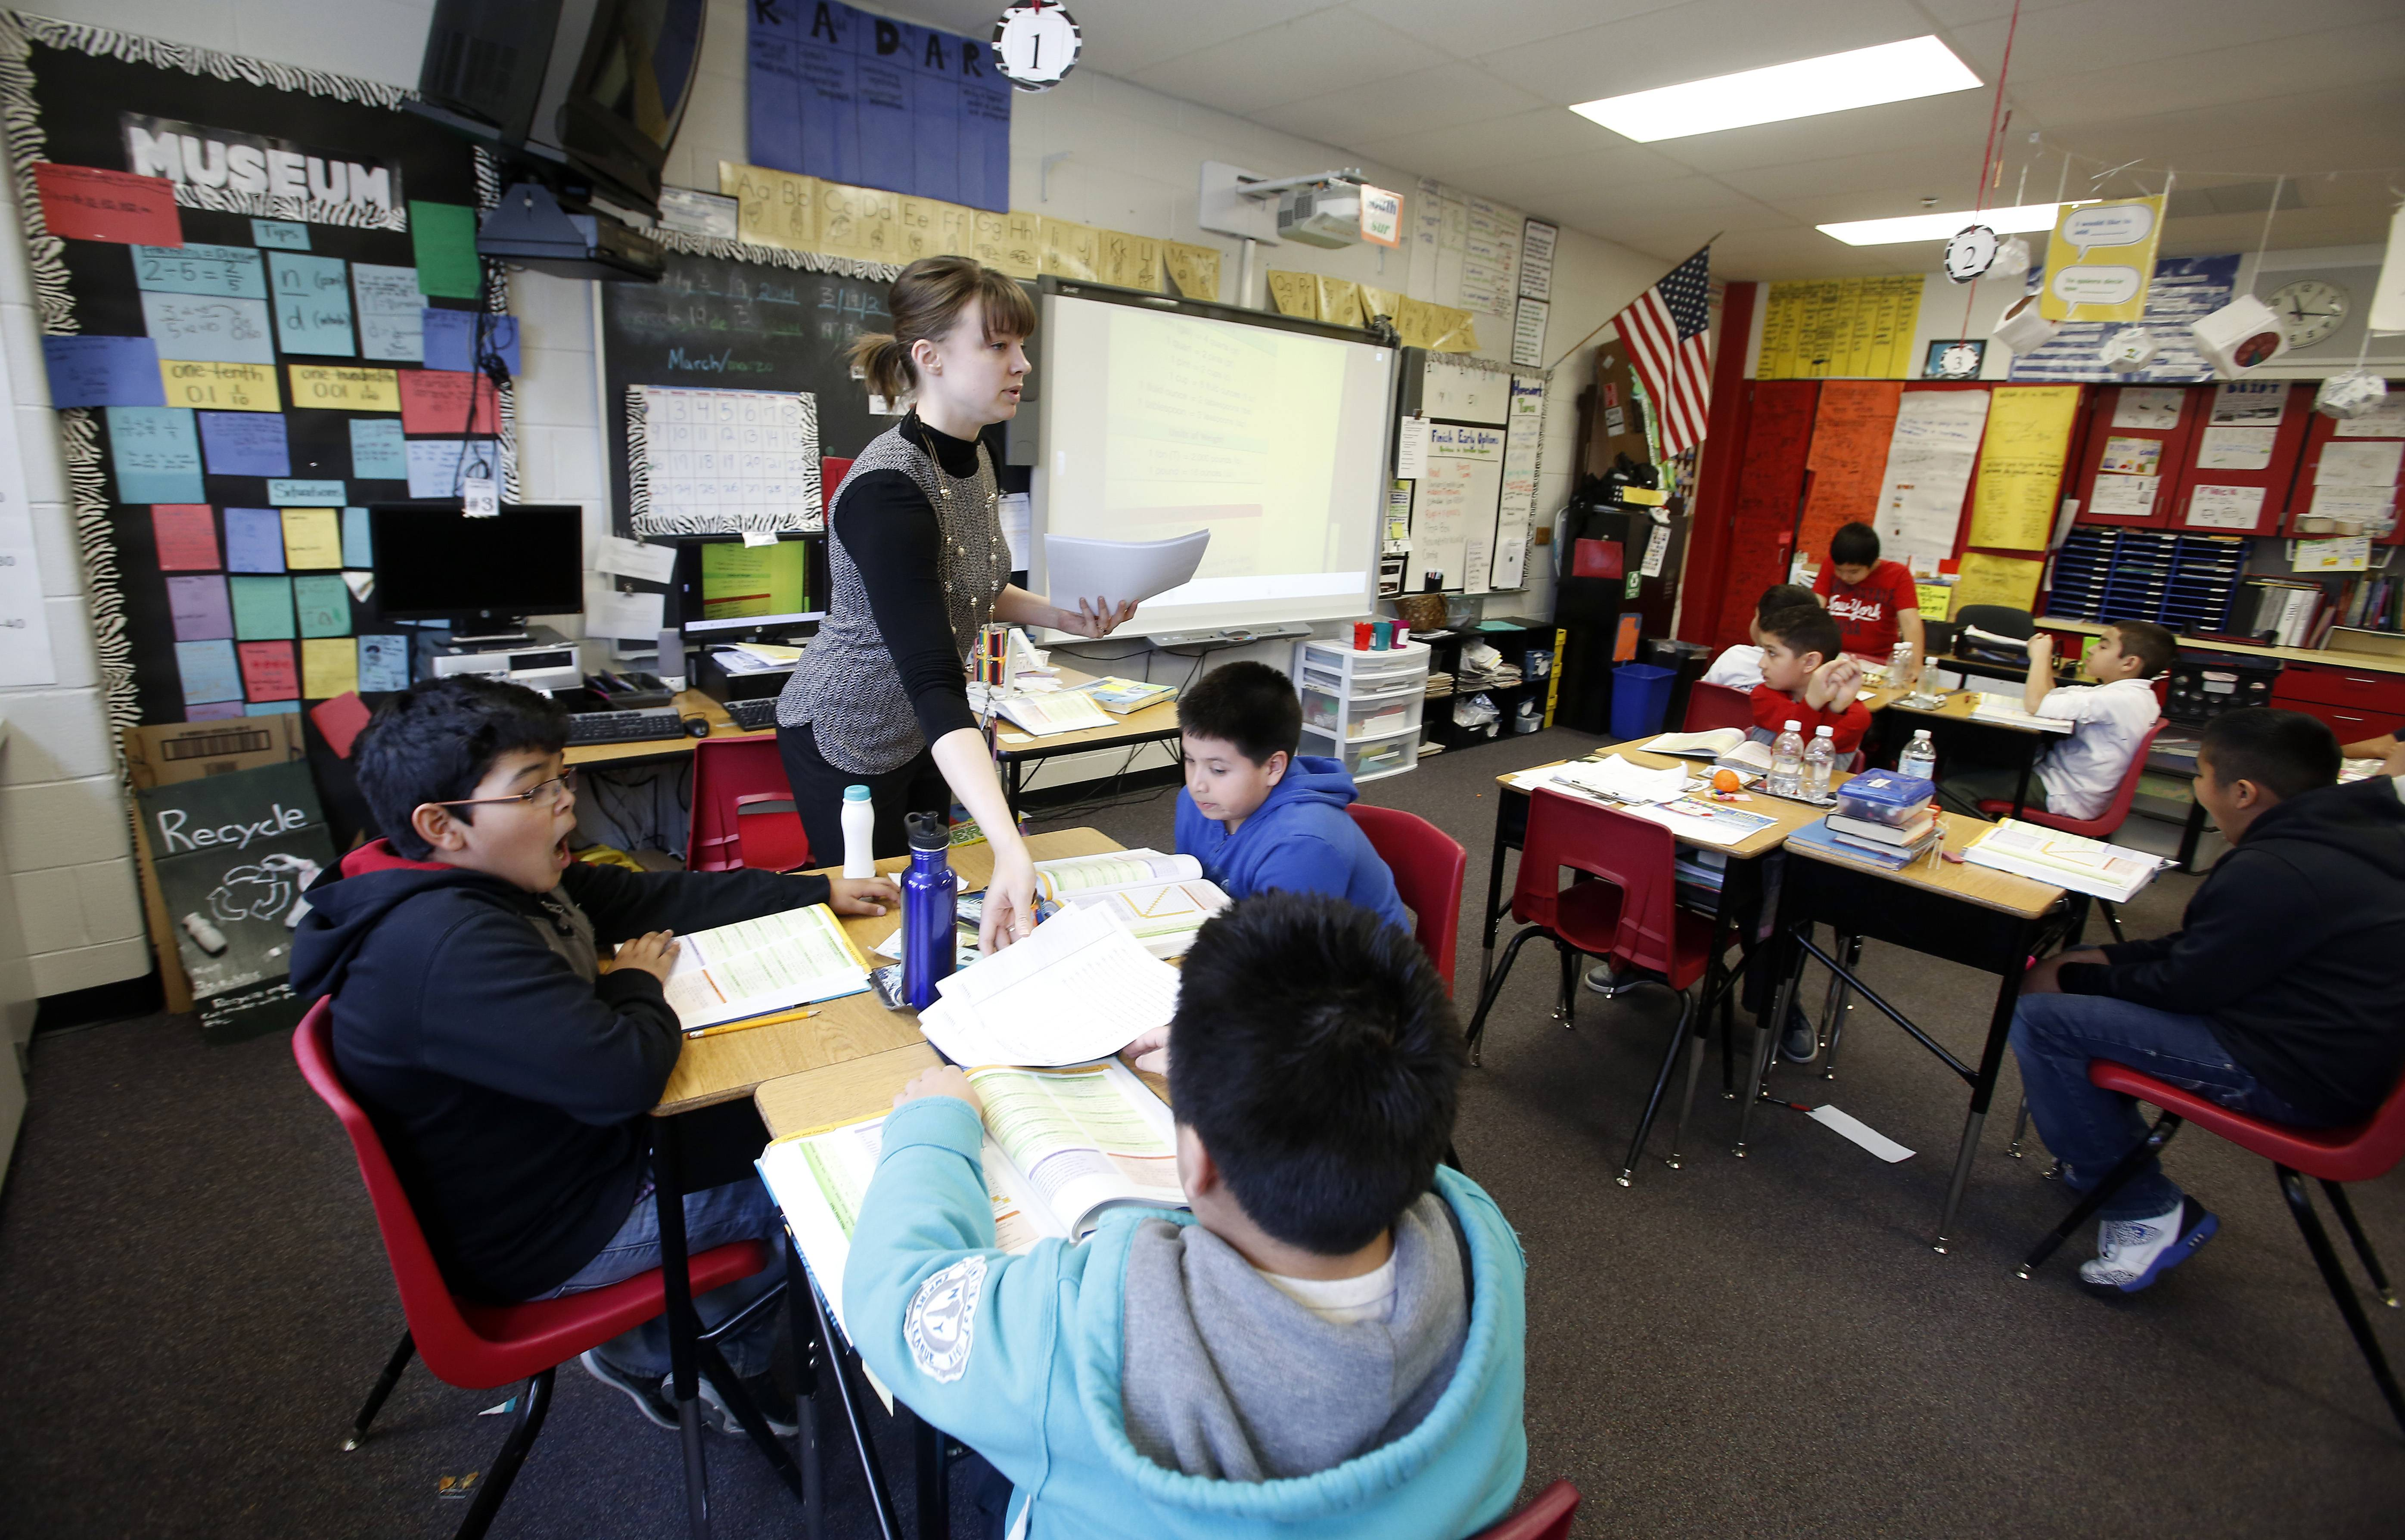 Kathryn Siscoe, a Spanish English Transition program teacher at Creekside Elementary School in Elgin, hands out papers to her fourth-grade students. U-46 will be eliminating all segregated fourth-grade gifted classrooms like this one next school year.